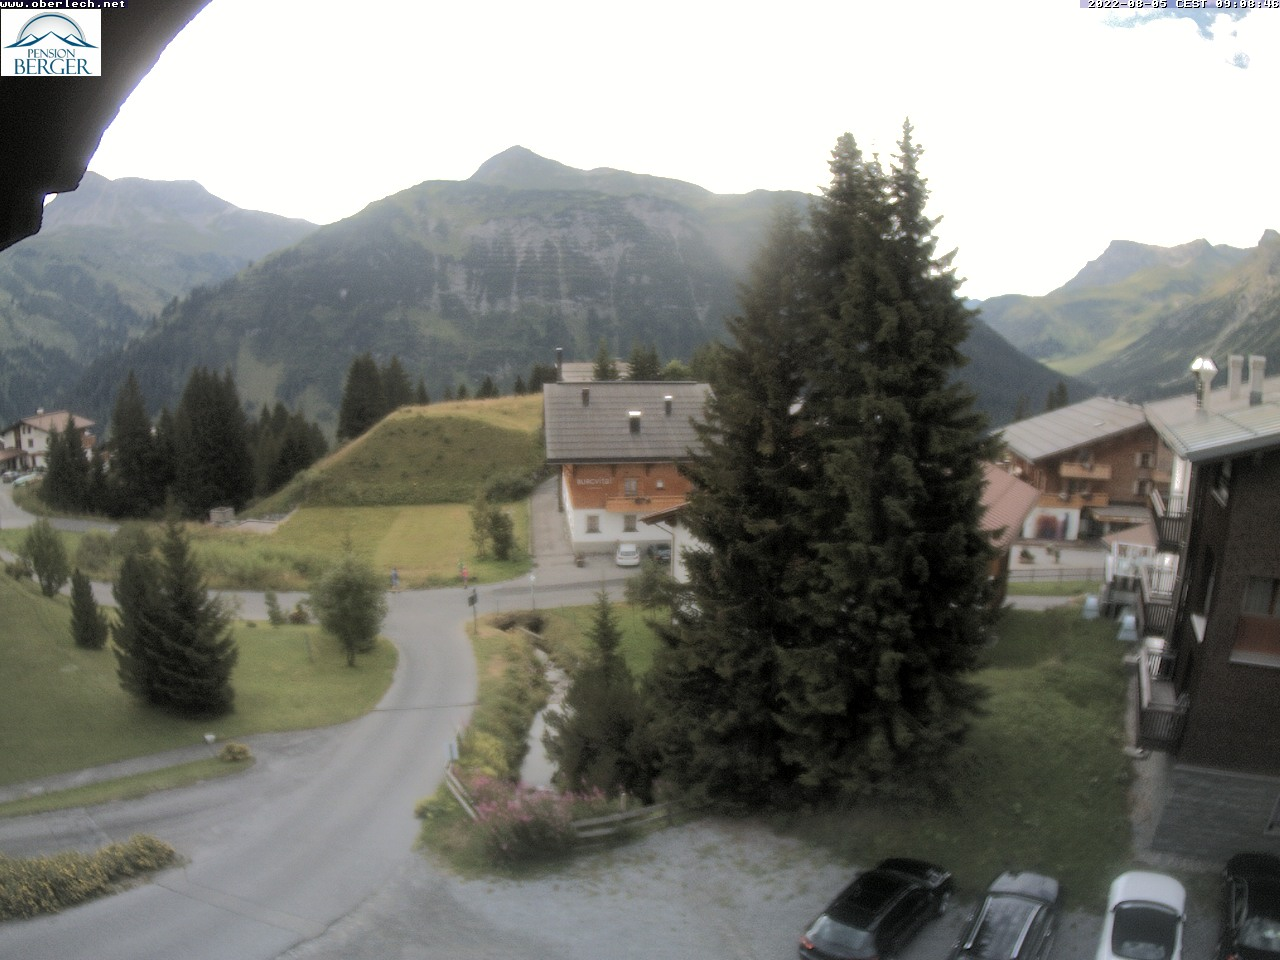 Lech Oberlech Pension Berger